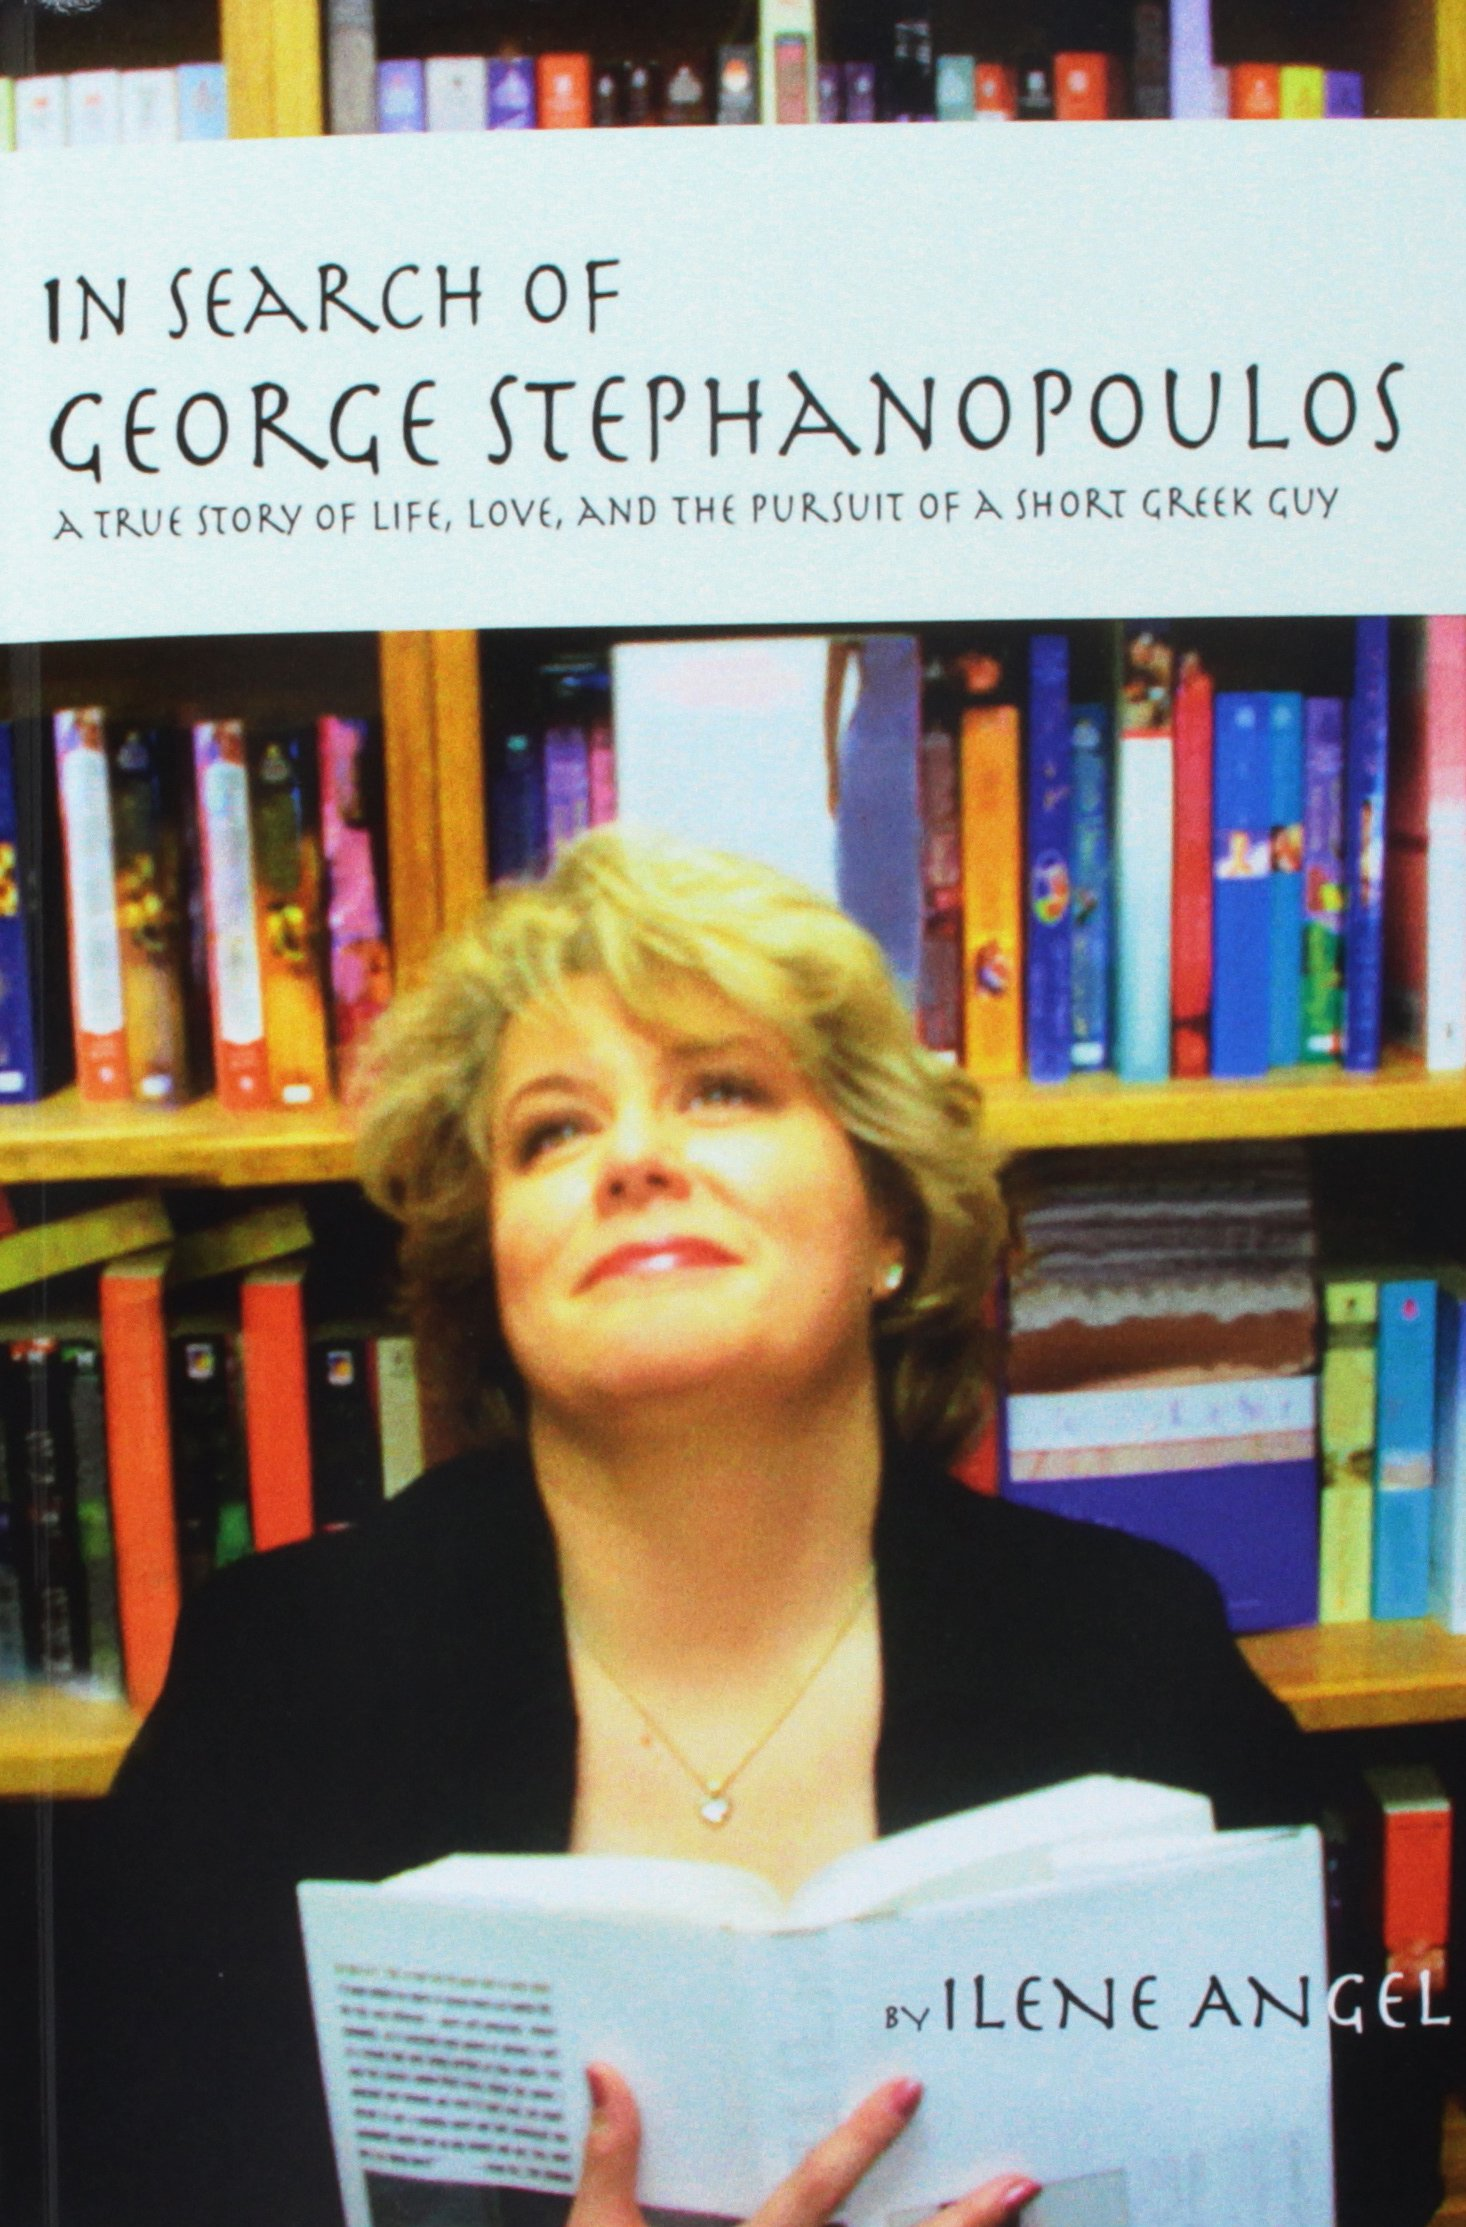 In Search of George Stephanopoulos: A True Story of Life, Love, and the Pursuit of a Short Greek Guy PDF